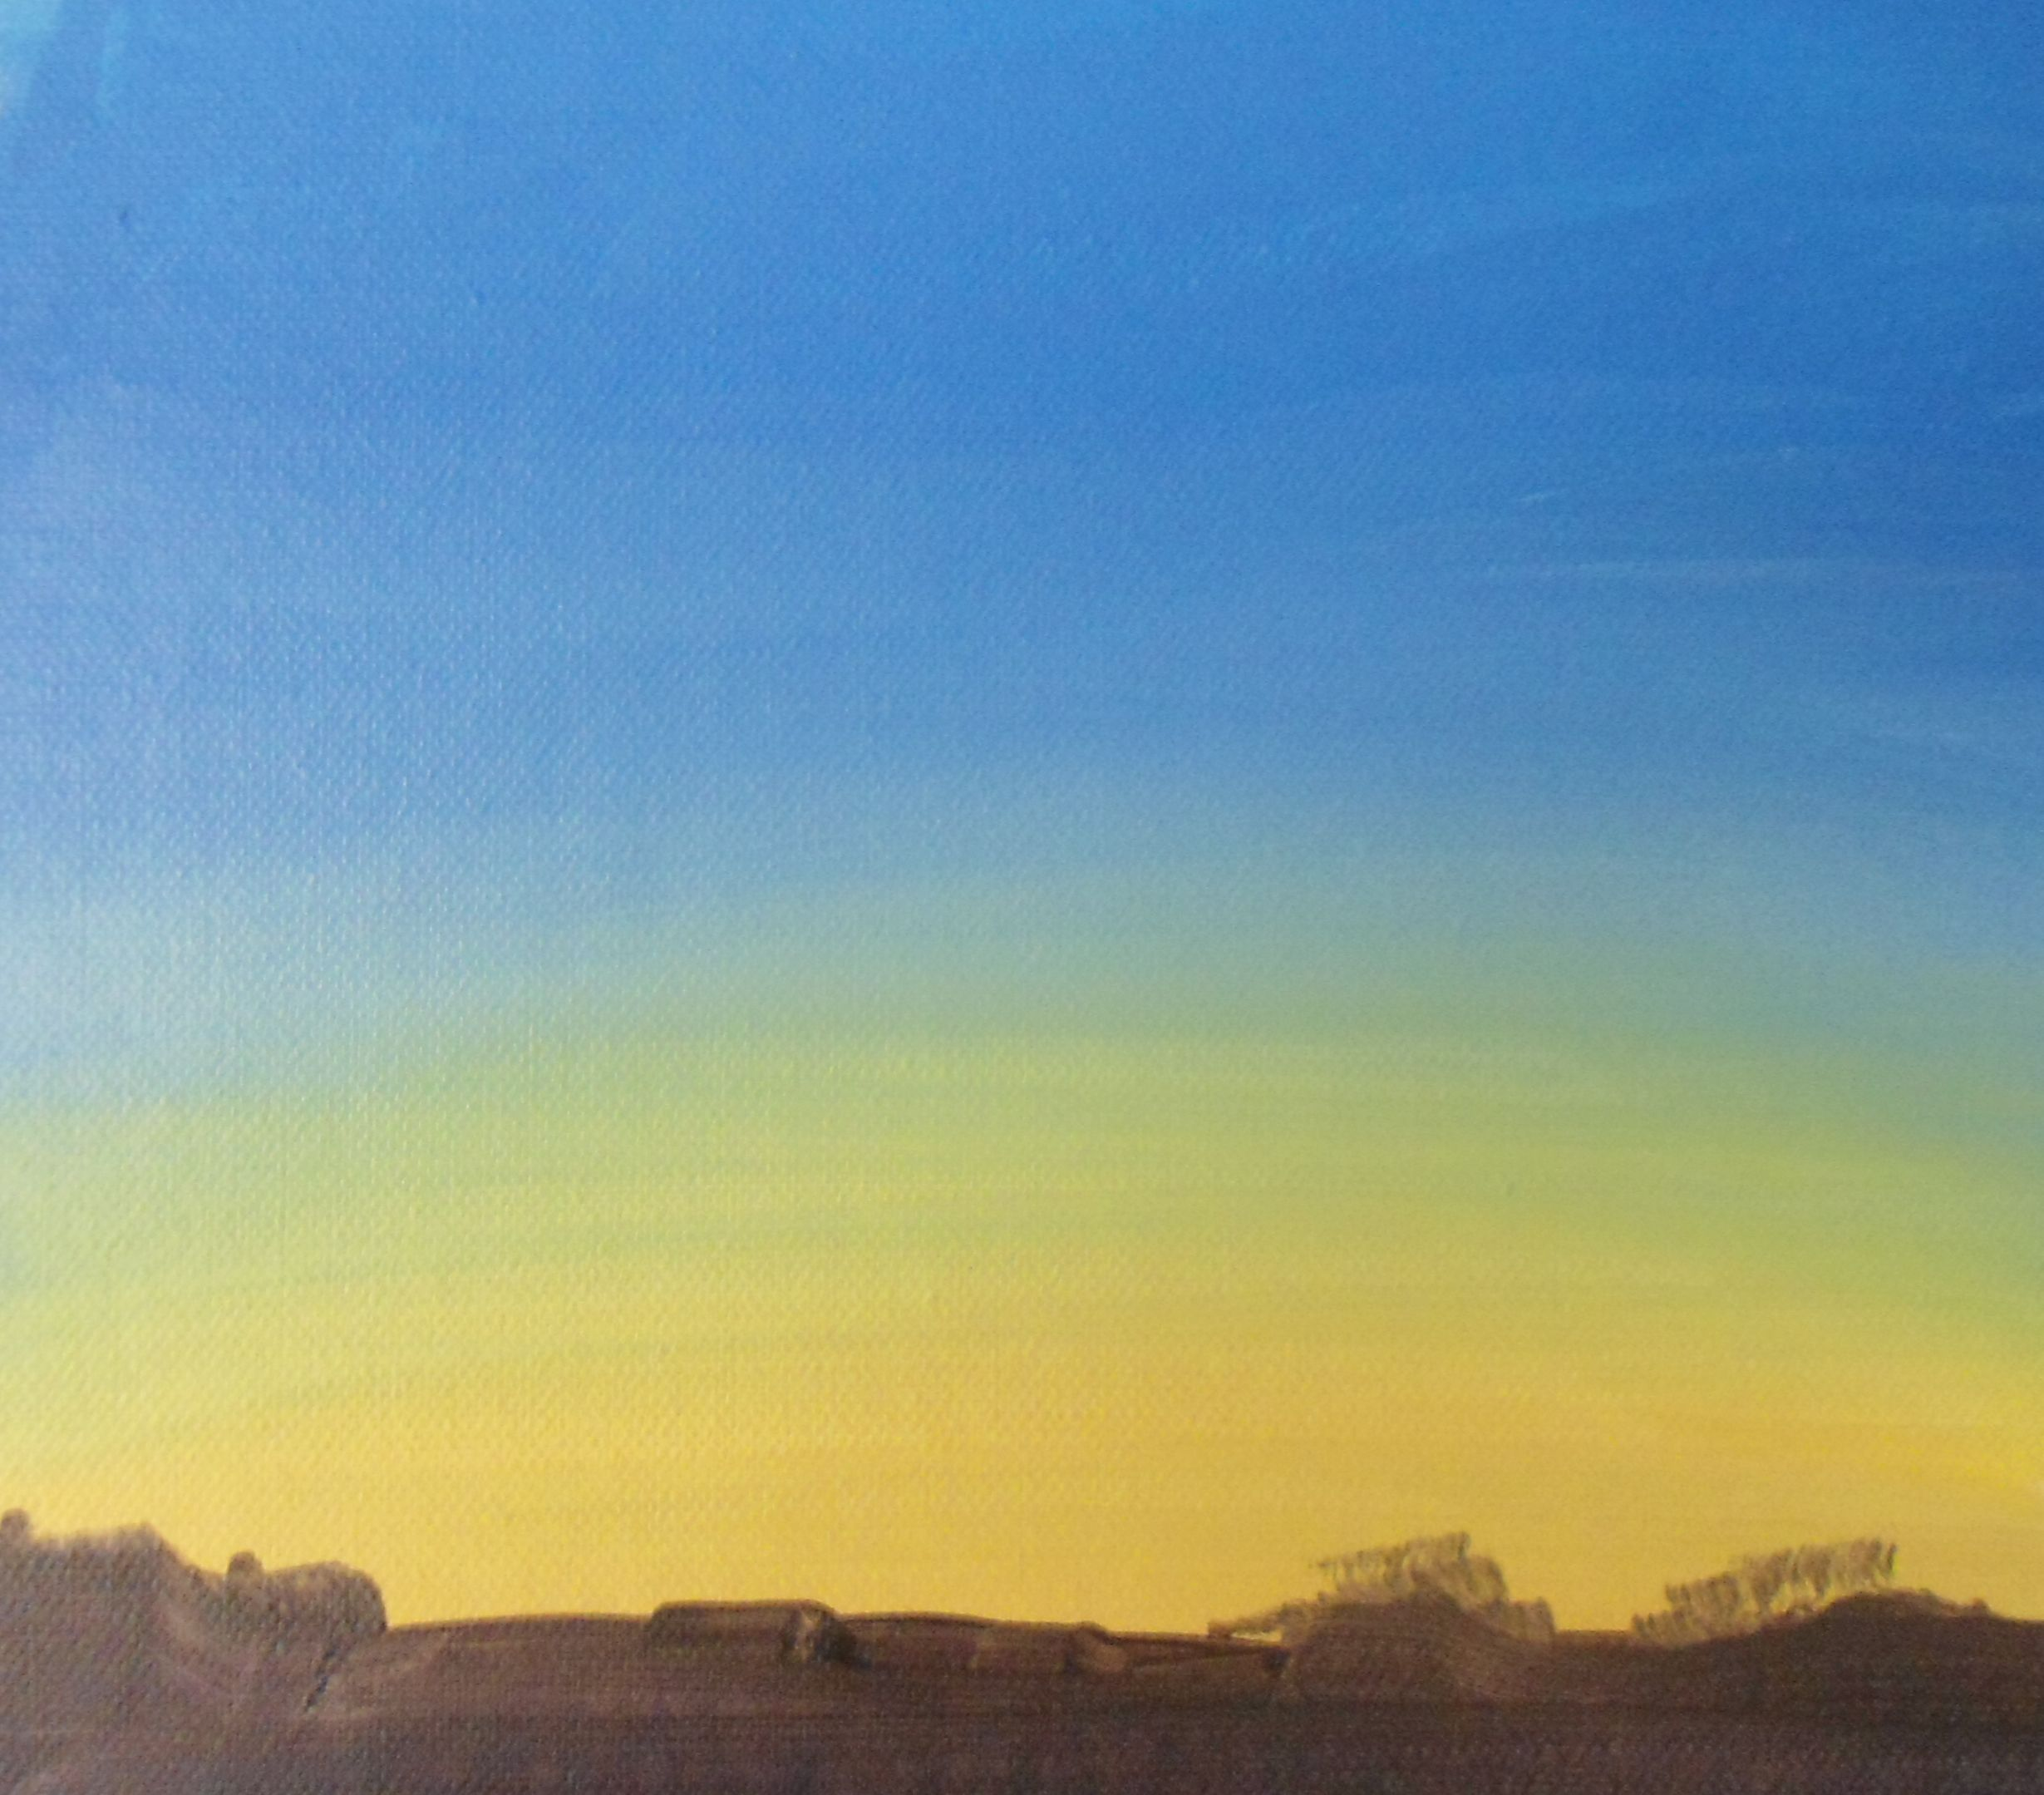 Learn how to paint a sky at dawn in #acrylics with Jon Cox as part of our #landscapes academy. Now available on ArtTutor.